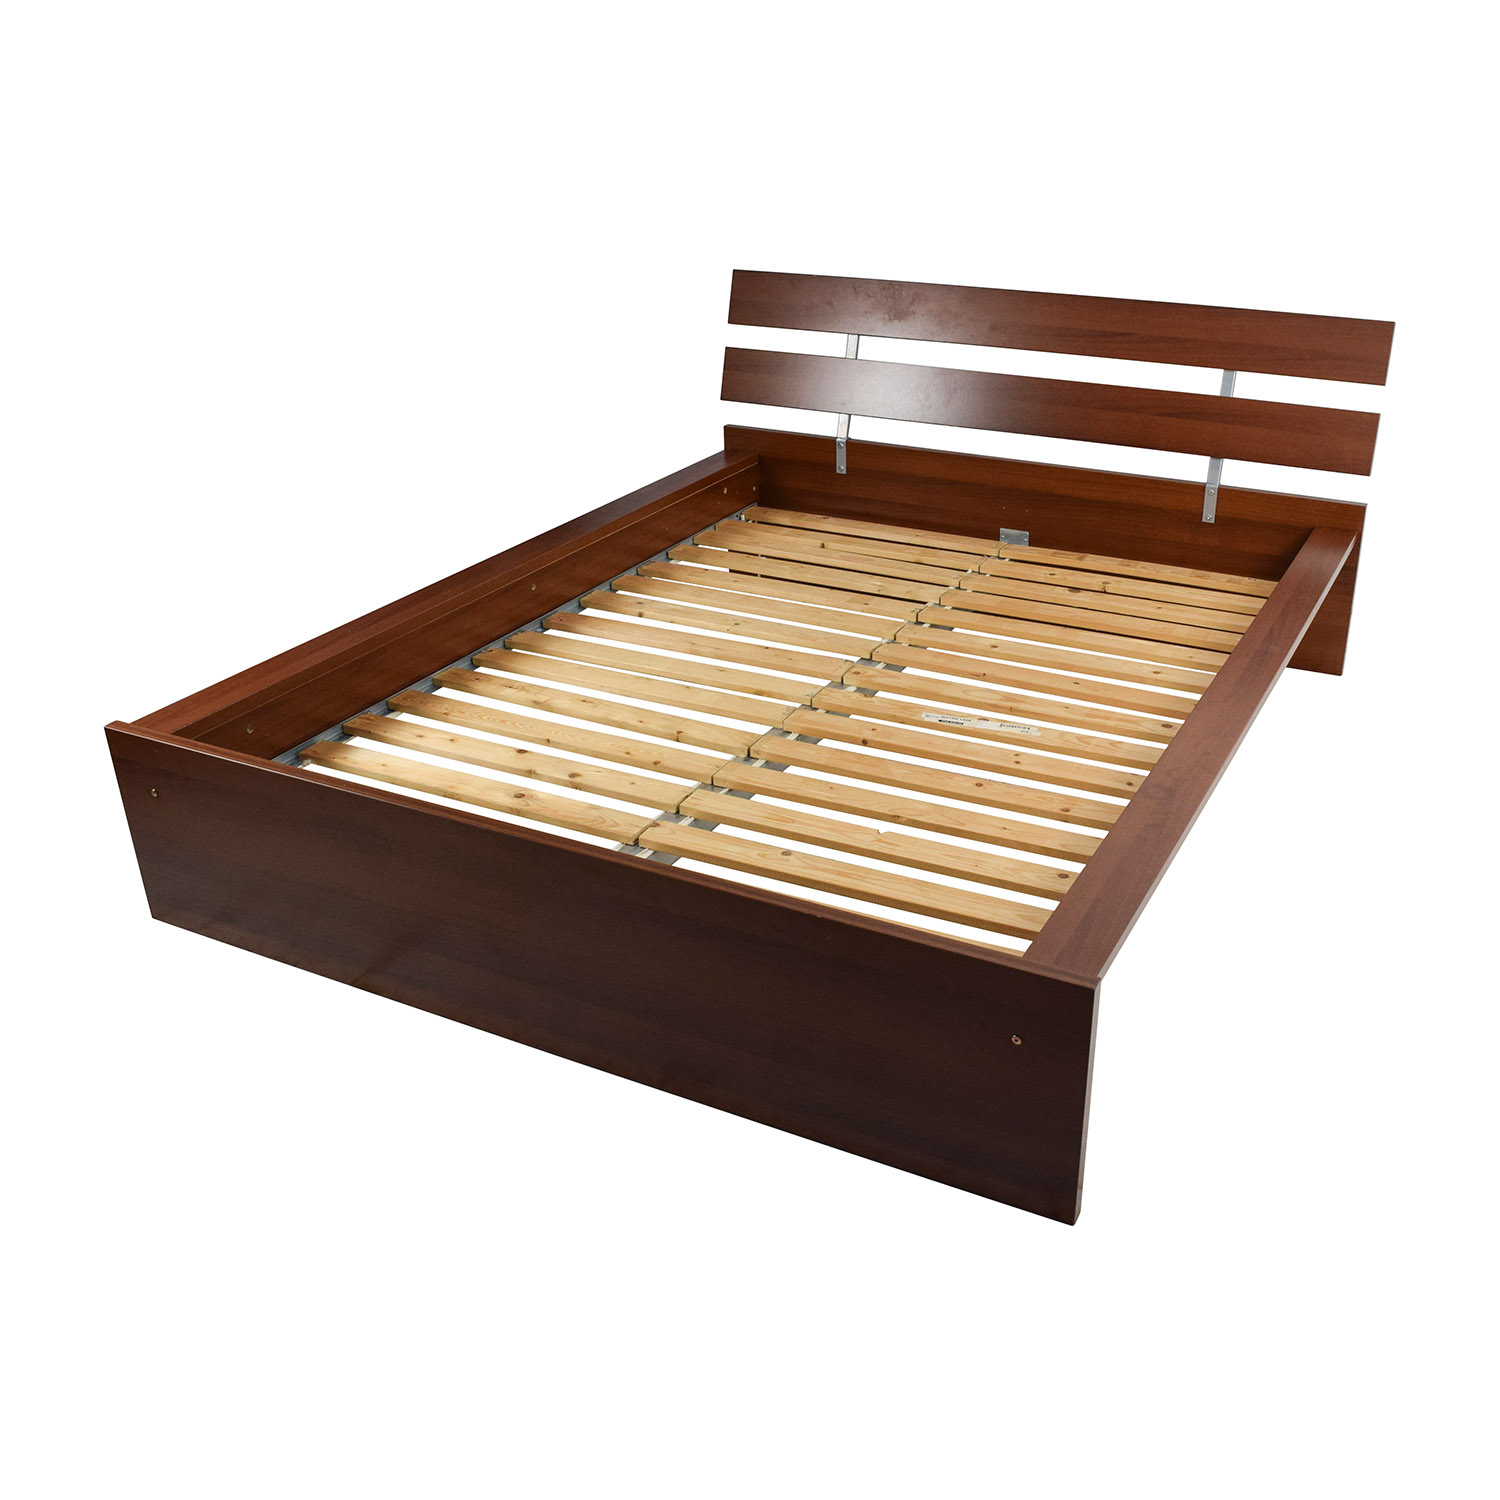 Best place to buy bed frame image for cheap wooden bed for Best places to buy picture frames